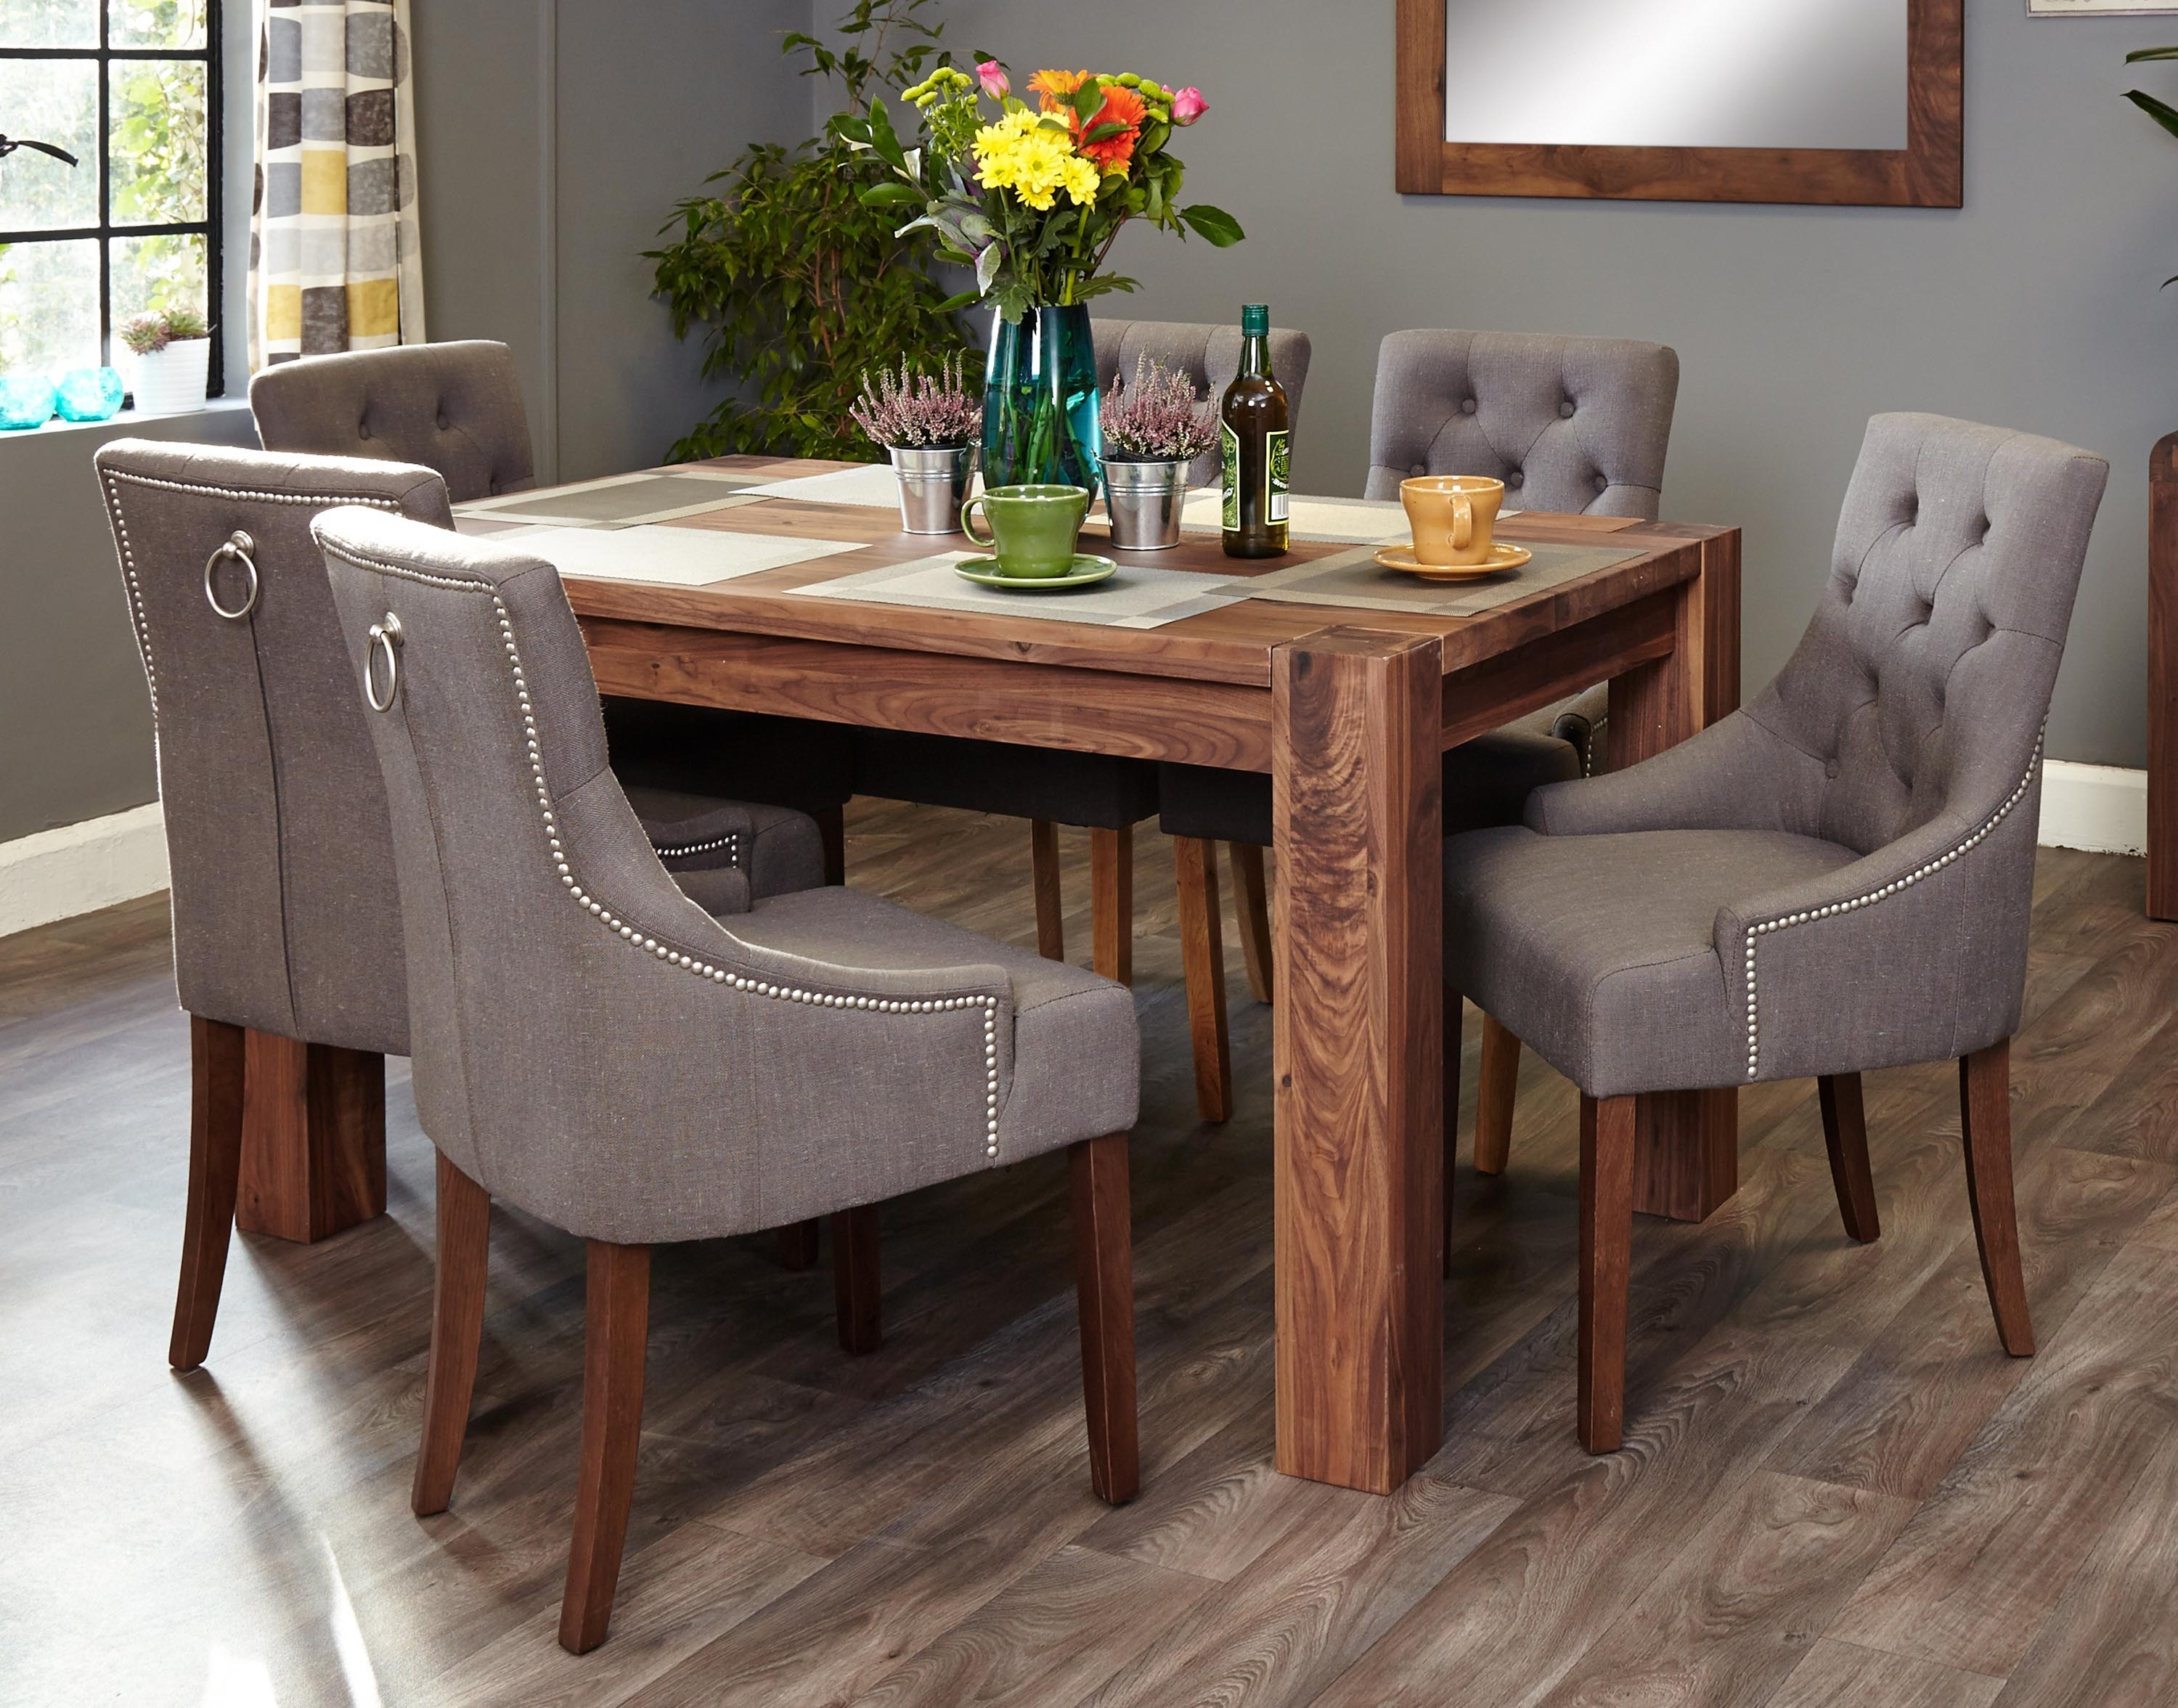 6 Seat Dining Table Sets For Well Known Mayan Walnut 6 Seater Dining Table Set (Accent) (Socdr04B Cdr03F) (Gallery 4 of 25)